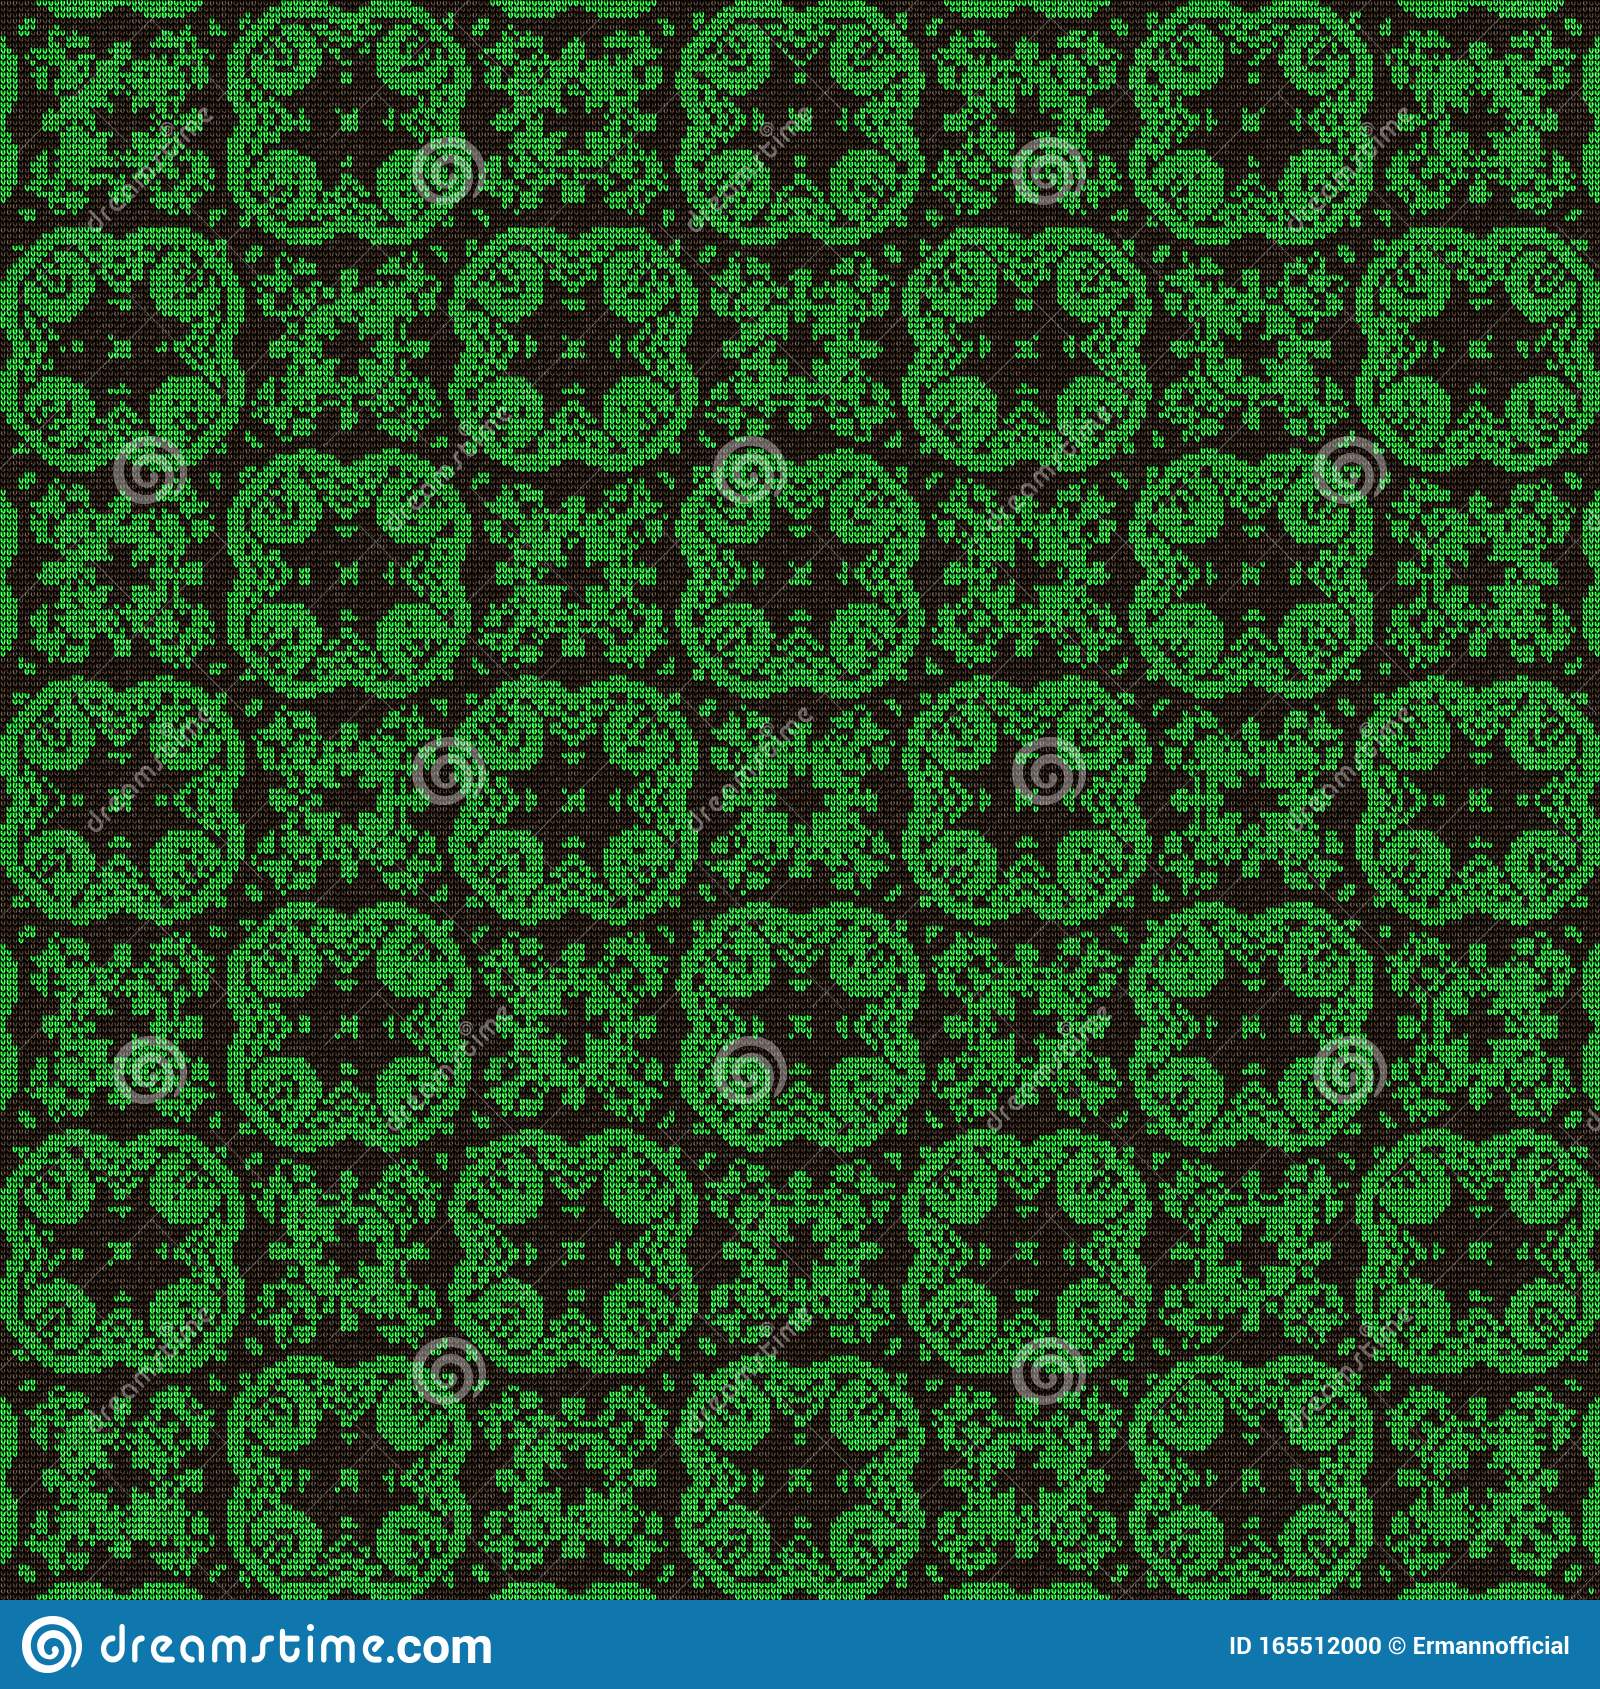 Retro Vintage Aesthetic Background Design 80s 90s Pattern With